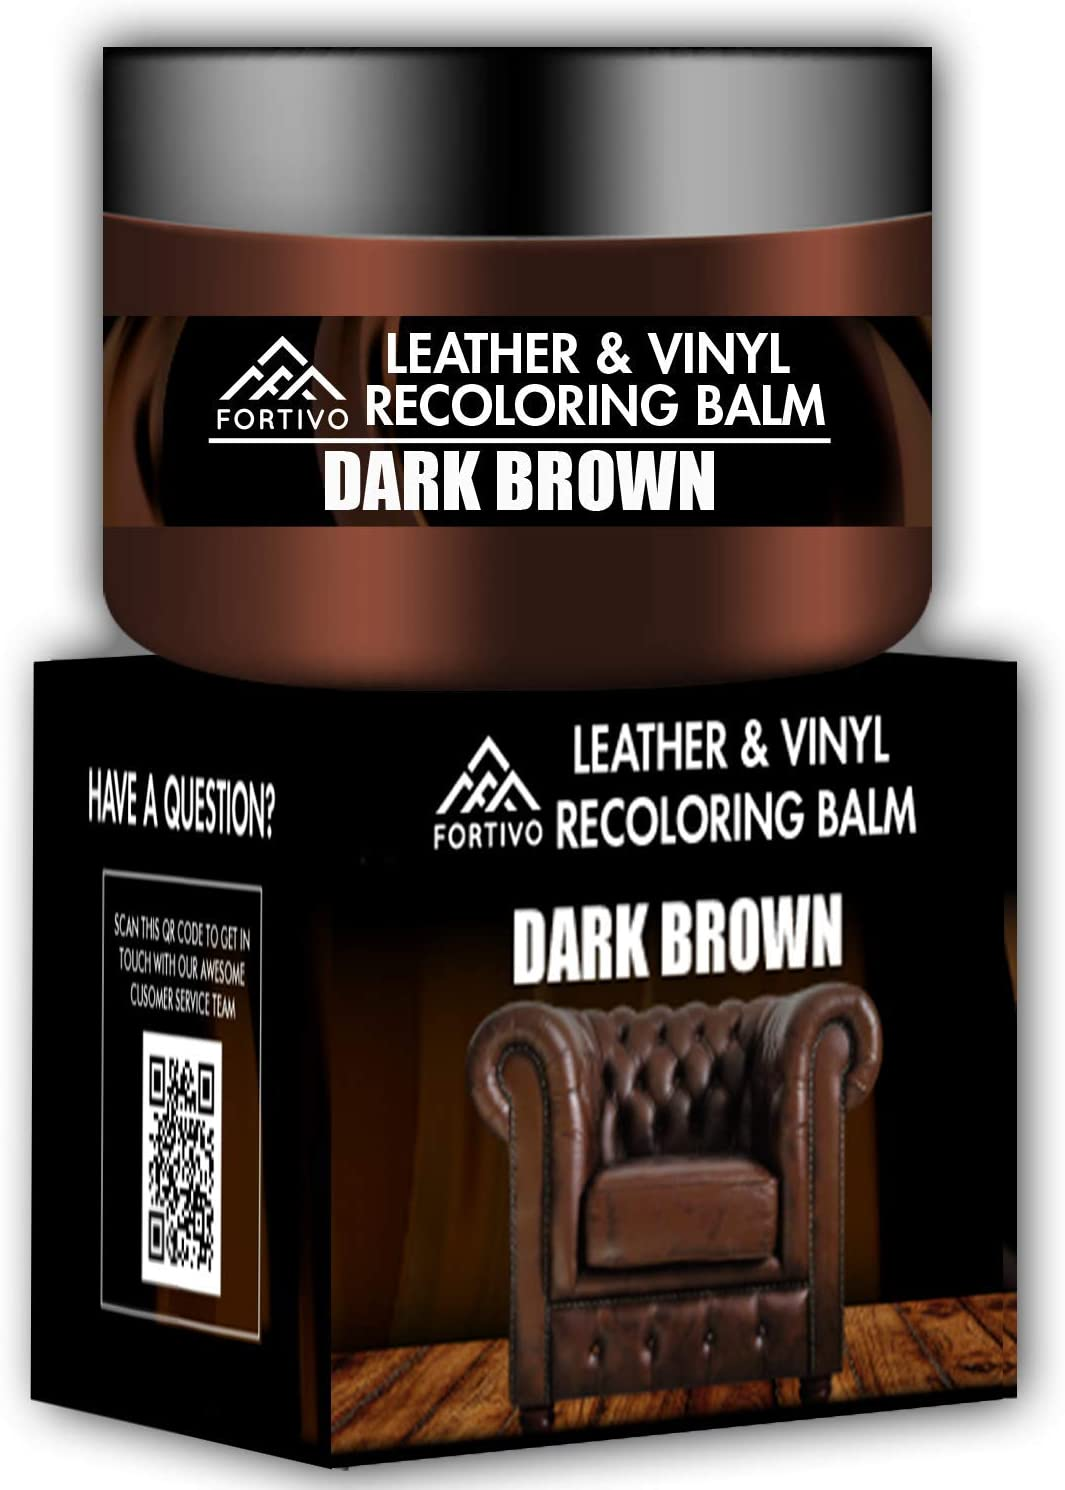 Amazon Com Dark Brown Leather Recoloring Balm Leather Repair Kits For Couches Leather Restorer For Couches Brown Car Seat Boots Cream Leather Repair For Upholstery Refurbishing Dark Brown Leather